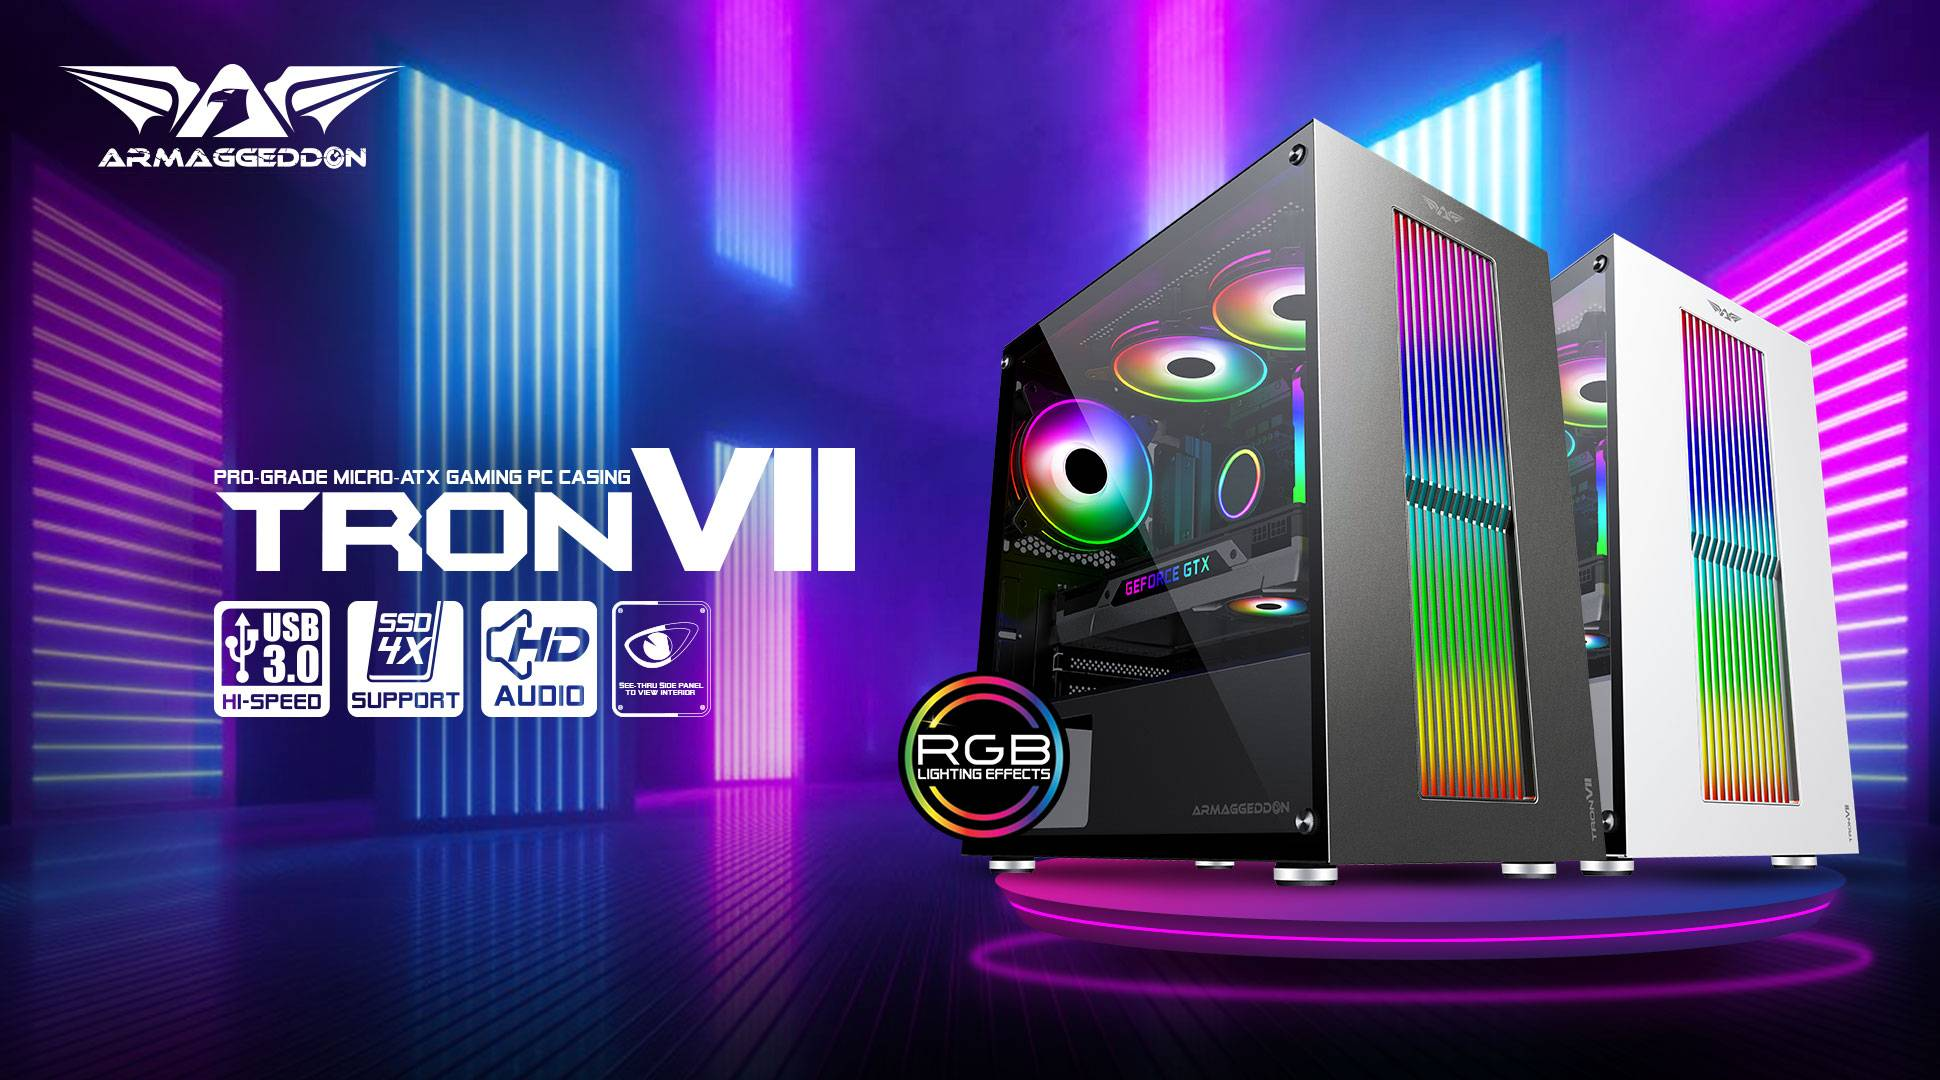 https://www.armaggeddon.com.my/pc-case-1/armaggeddon-tron-vii-atx-gaming-pc-case-with-tempered-glass-side-panel-design?limit=100